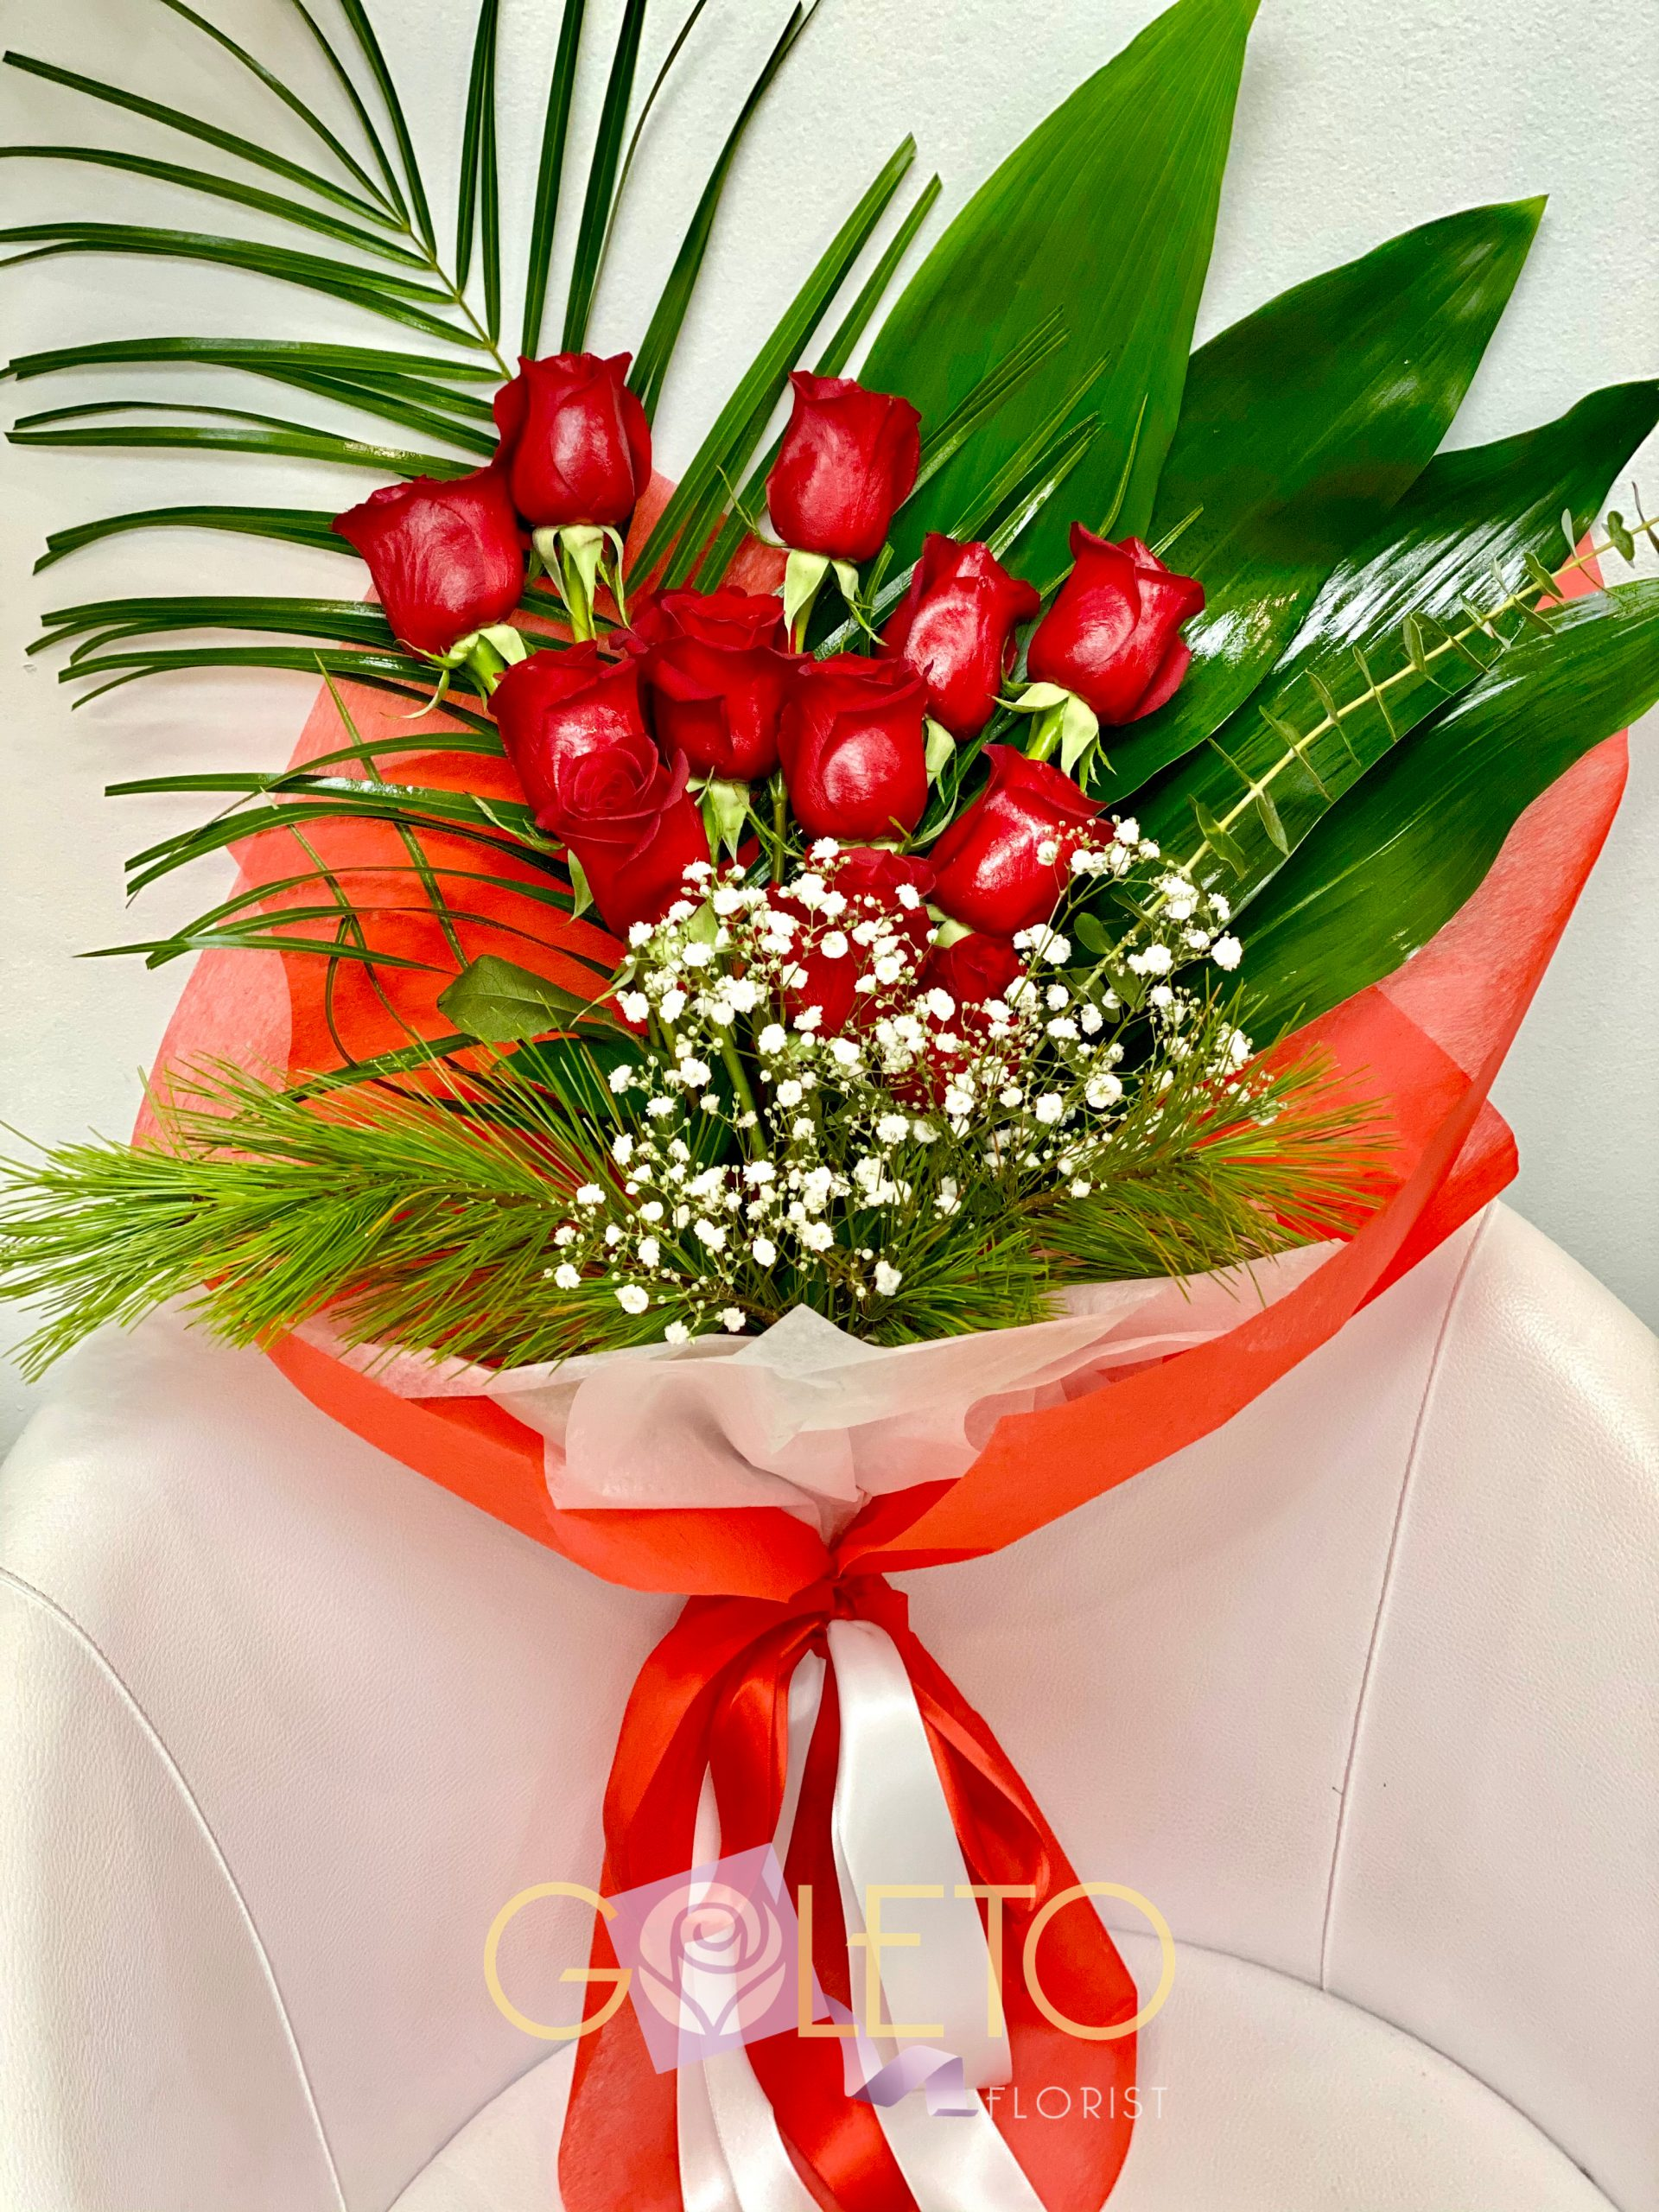 goleto-christmas-gift-and-flowers-idea112